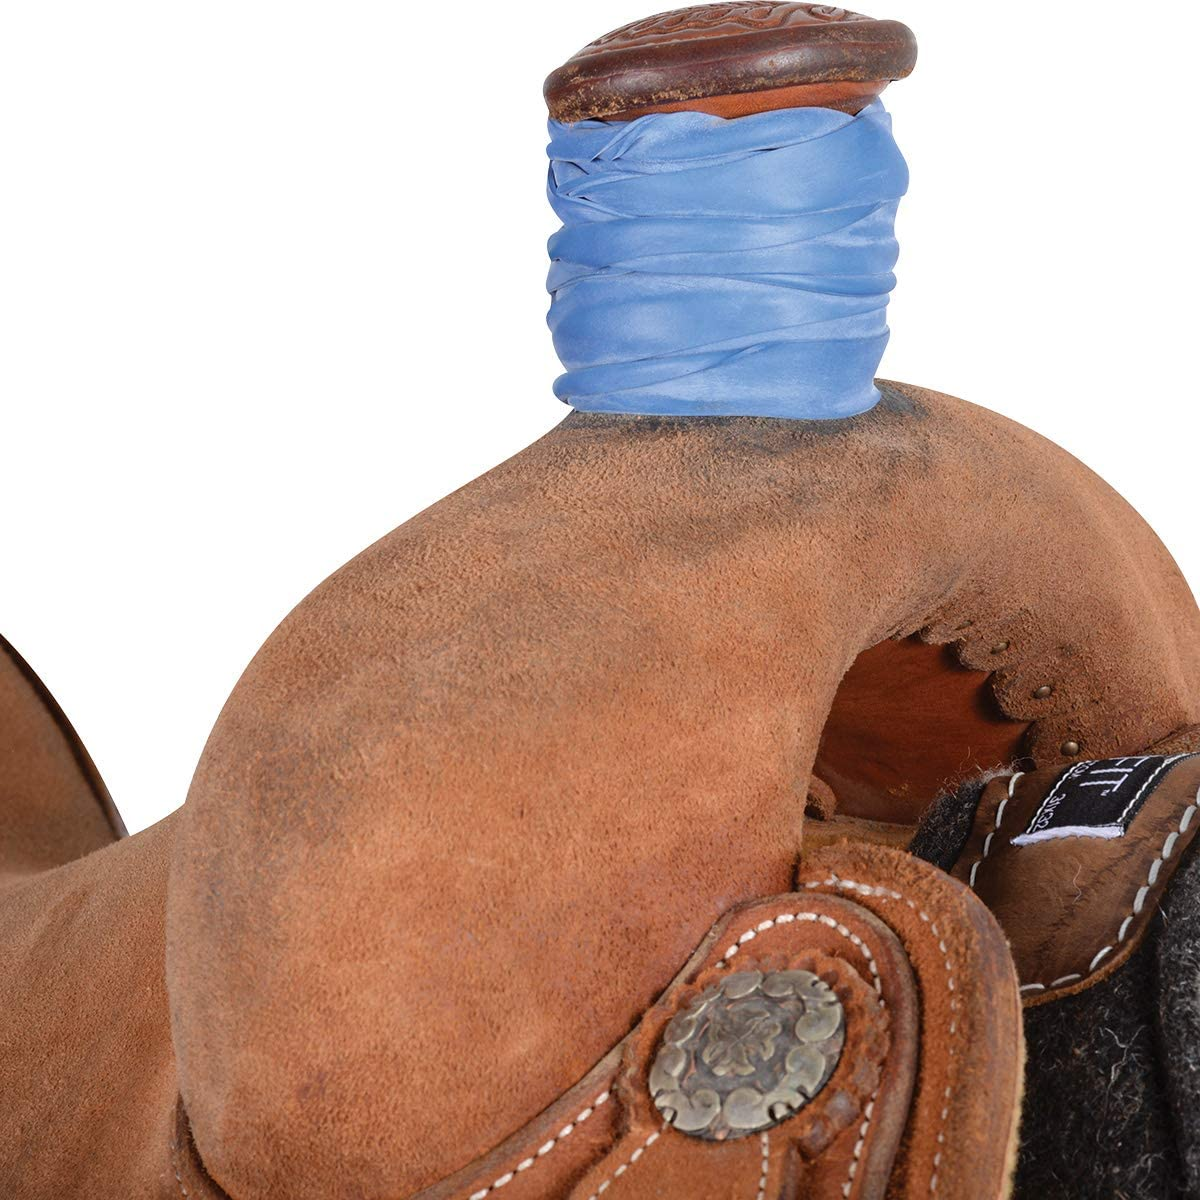 Classic Ropes Rubber Dally Wraps 12 Pack By Classic Ropes New Horse Horn Saddle